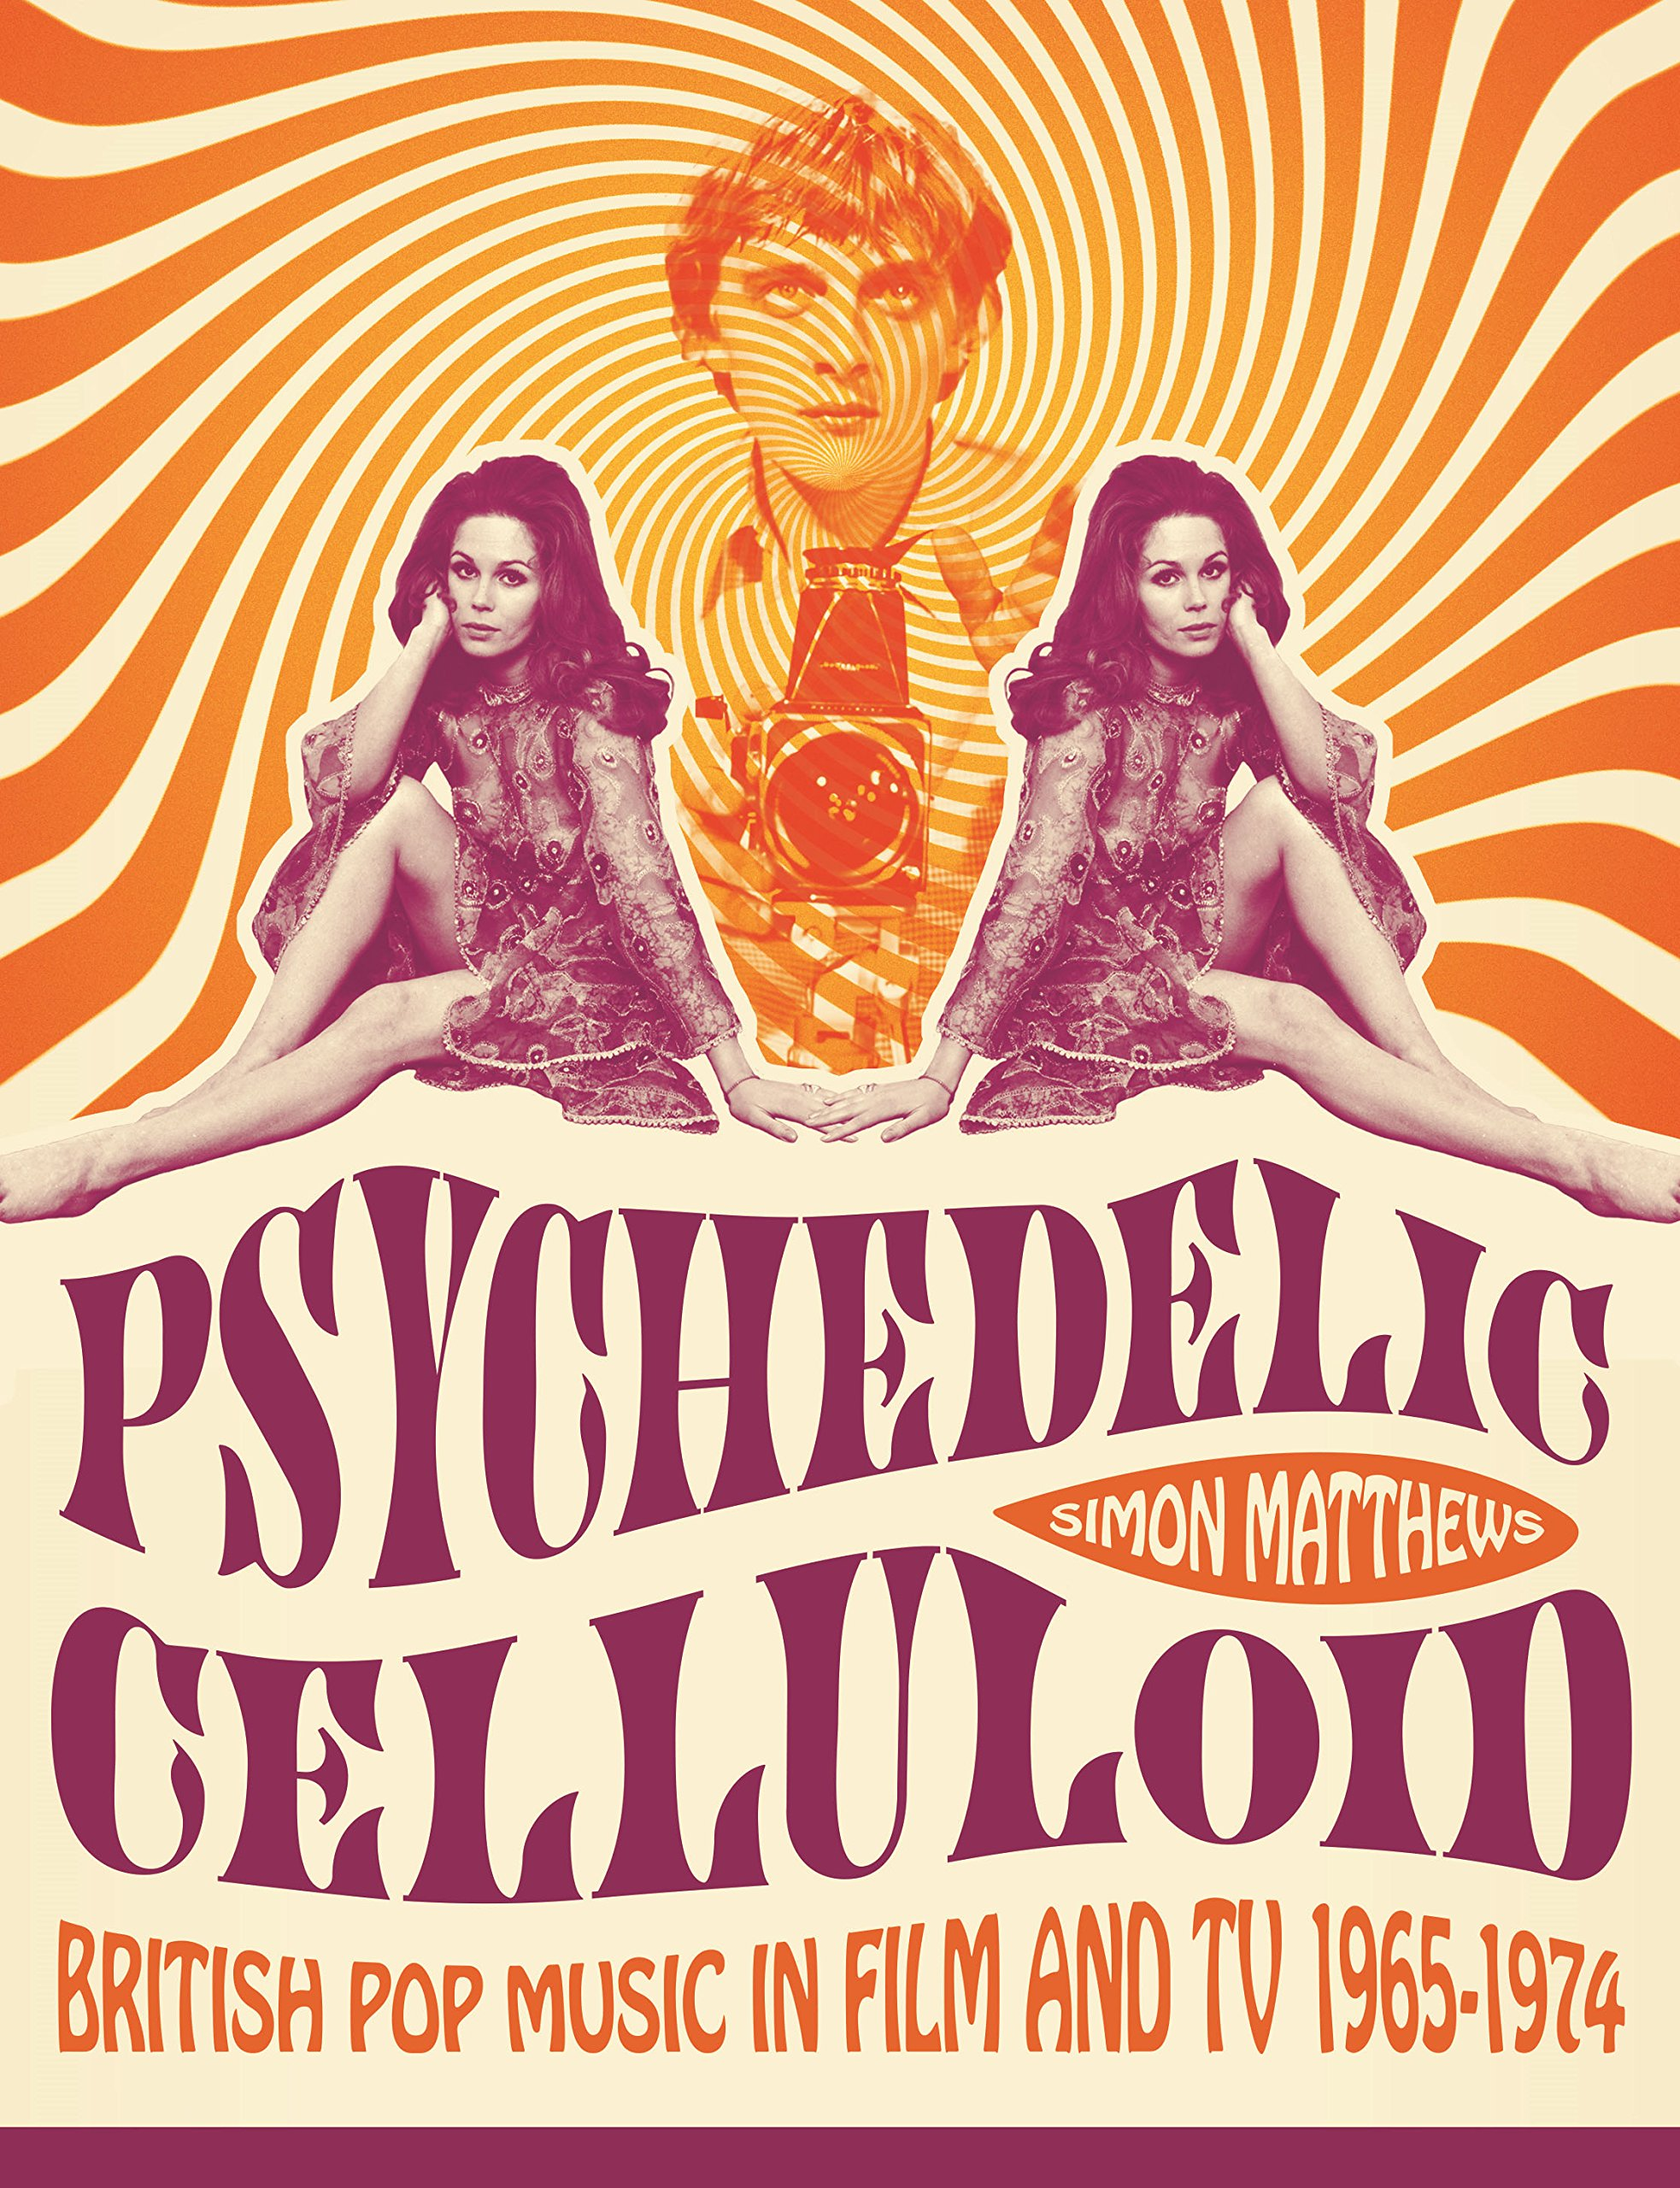 Read Online Psychedelic Celluloid: British Pop Music in Film and TV 1965-1974 pdf